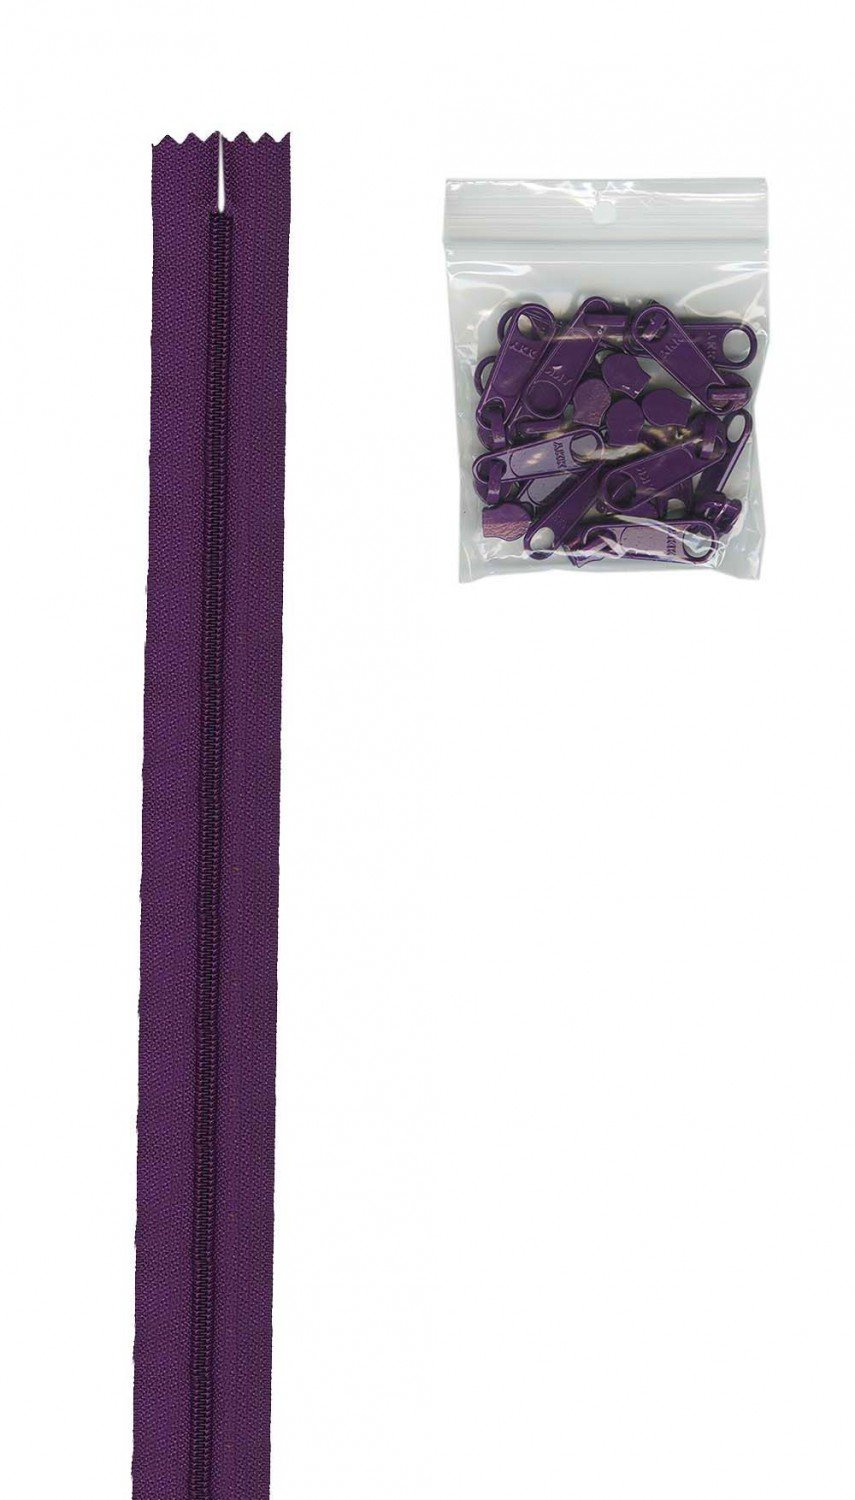 Zippers By The Inch 16mm #4.5 zipper chain Tahiti